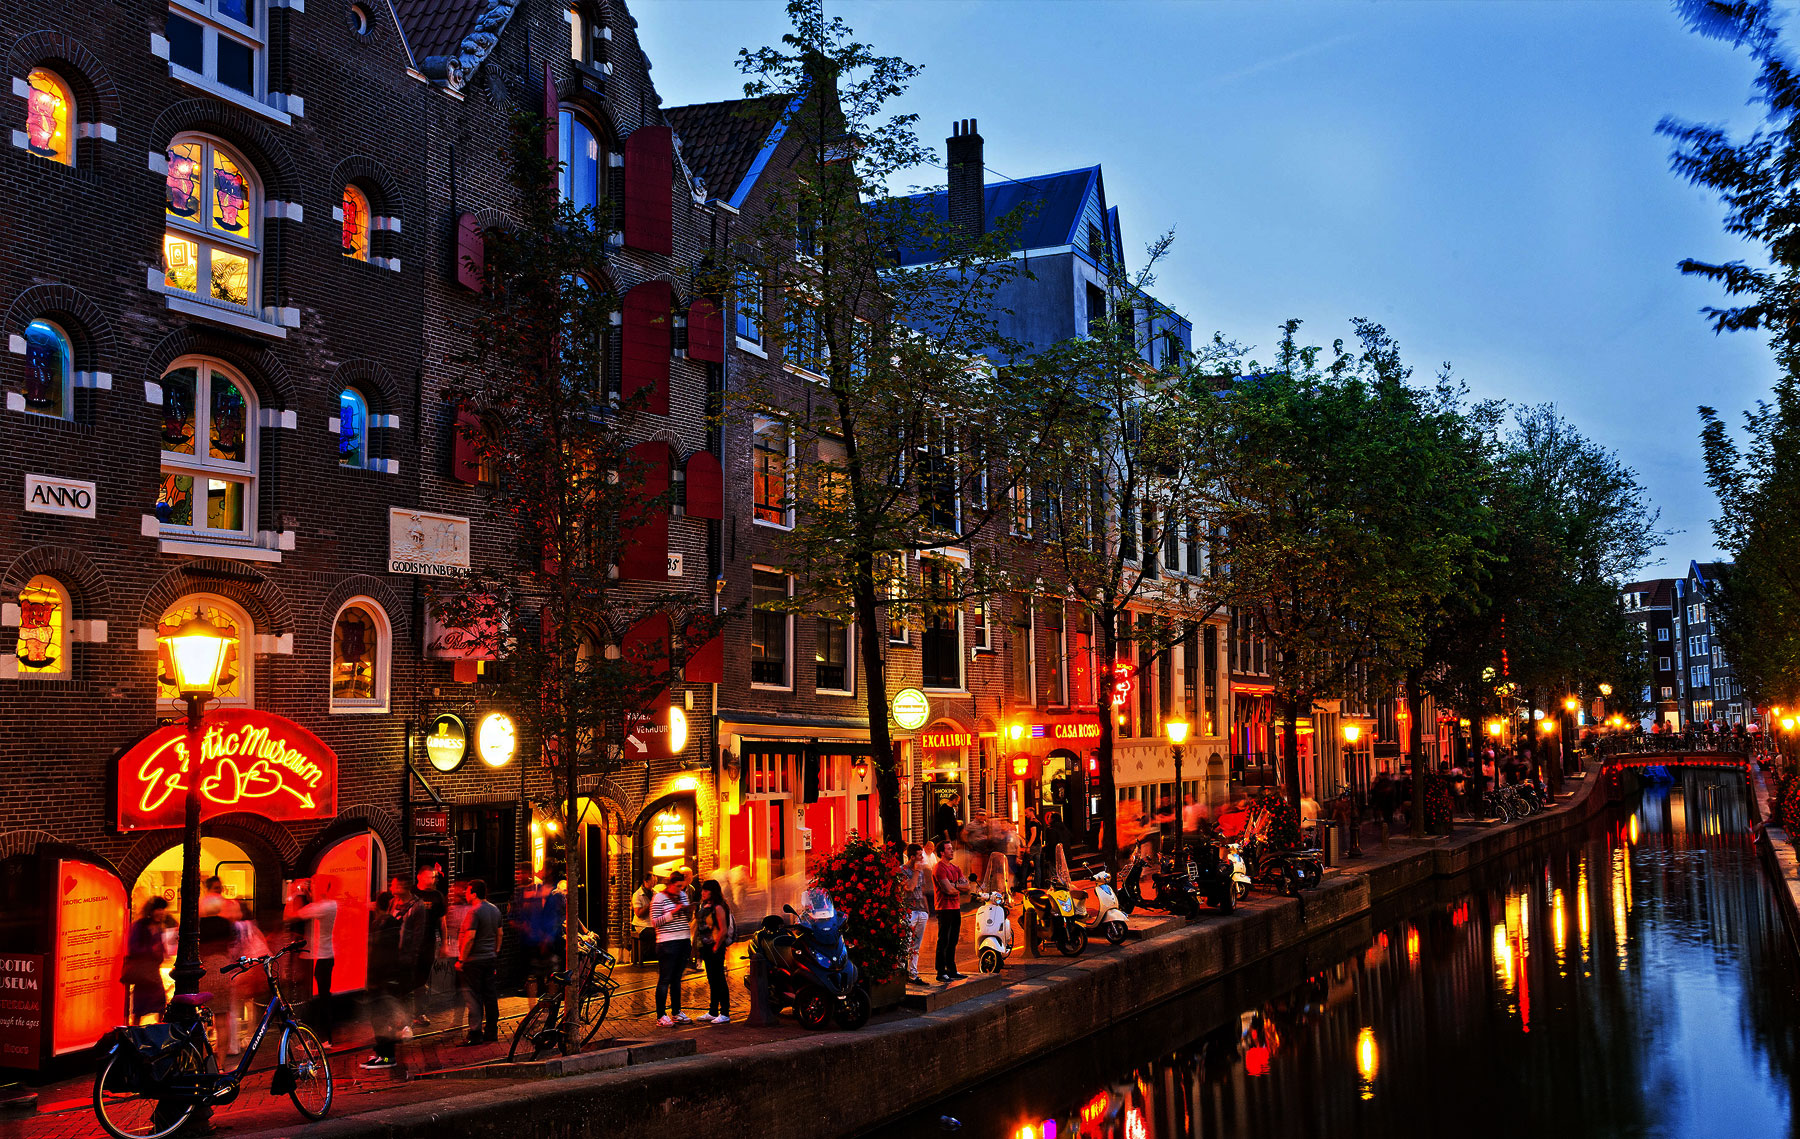 20 Under $100 Budget-Friendly Places to Live in Amsterdam on a Family Vacation